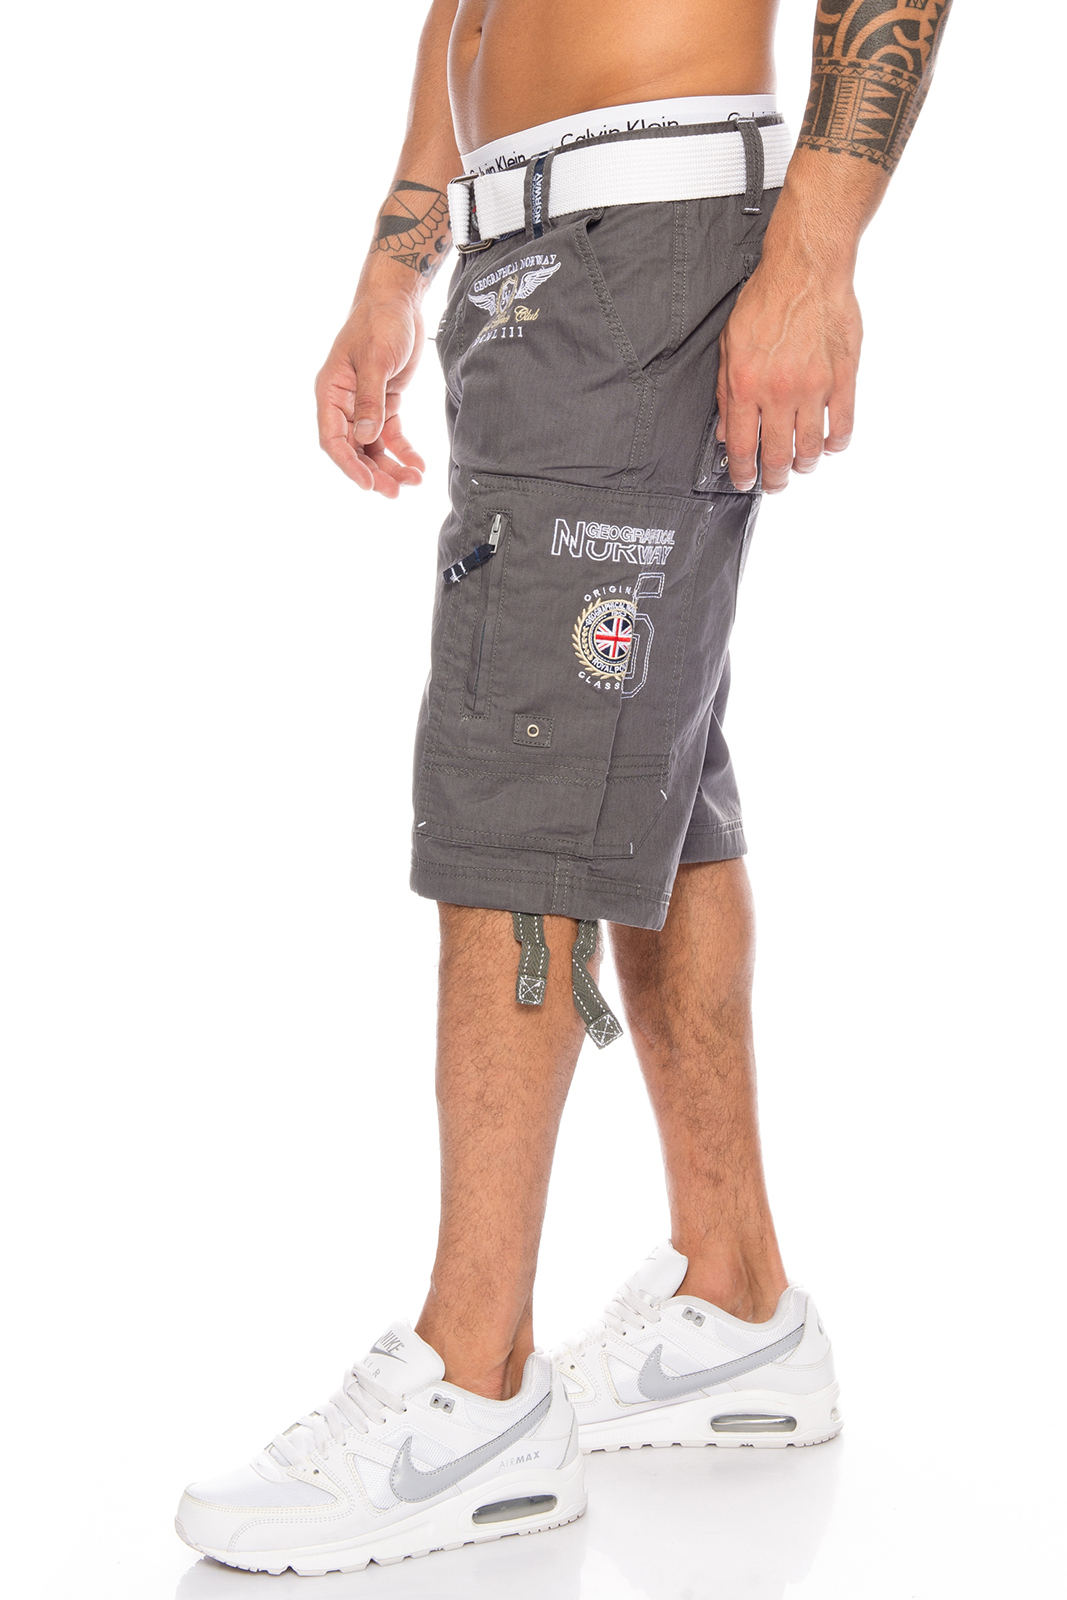 geographical norway men 39 s bermuda pants shorts mens shorts. Black Bedroom Furniture Sets. Home Design Ideas